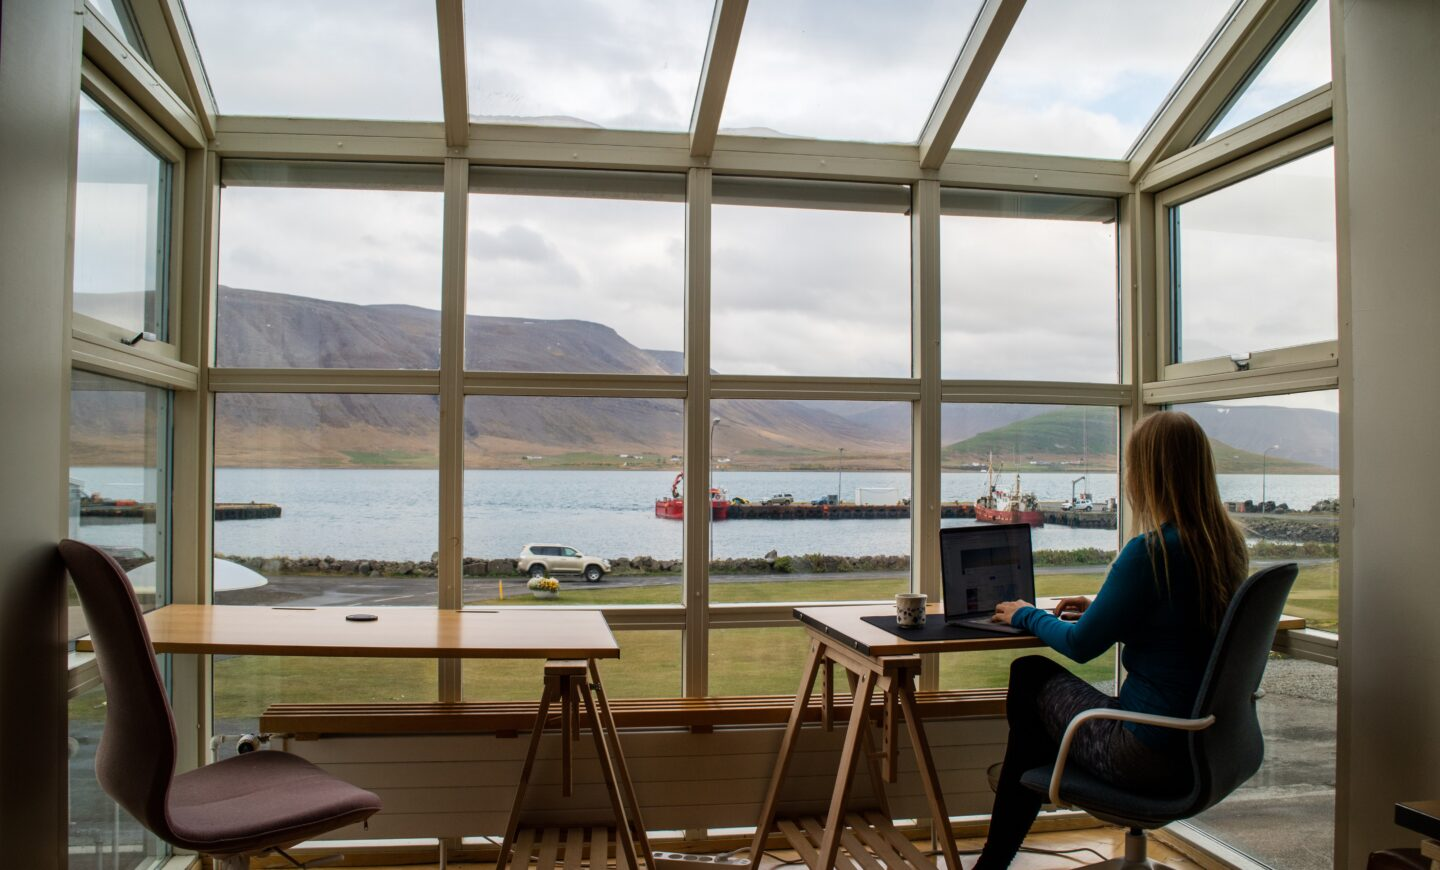 5 Ways Remote Jobs Can Radically Improve Your Health and Lifestyle